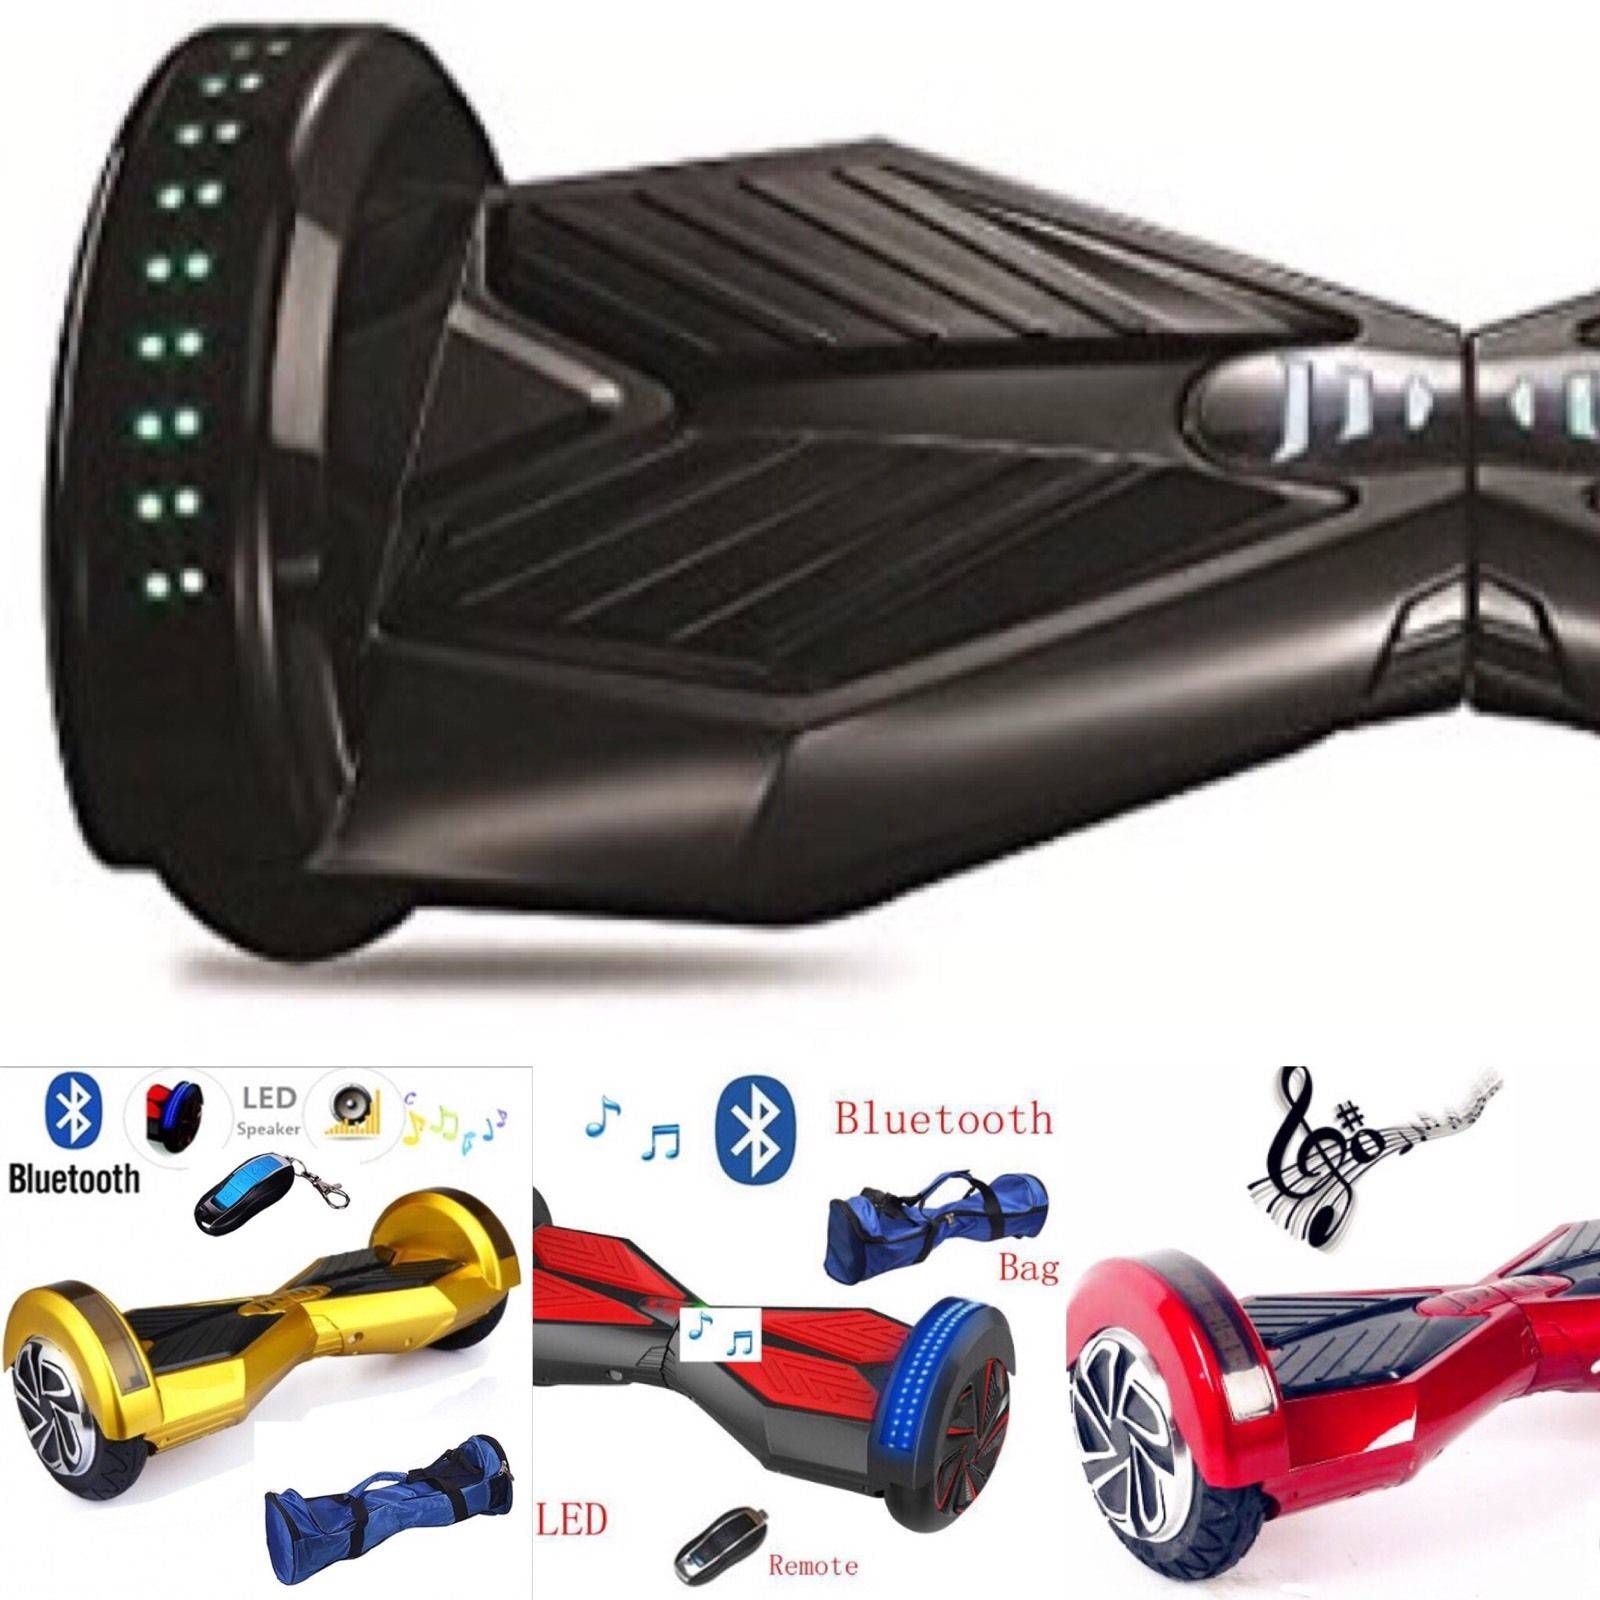 8 Smart Balance Scooter, UL Certified, High Quality, 1 Year warranty, Bluetooth